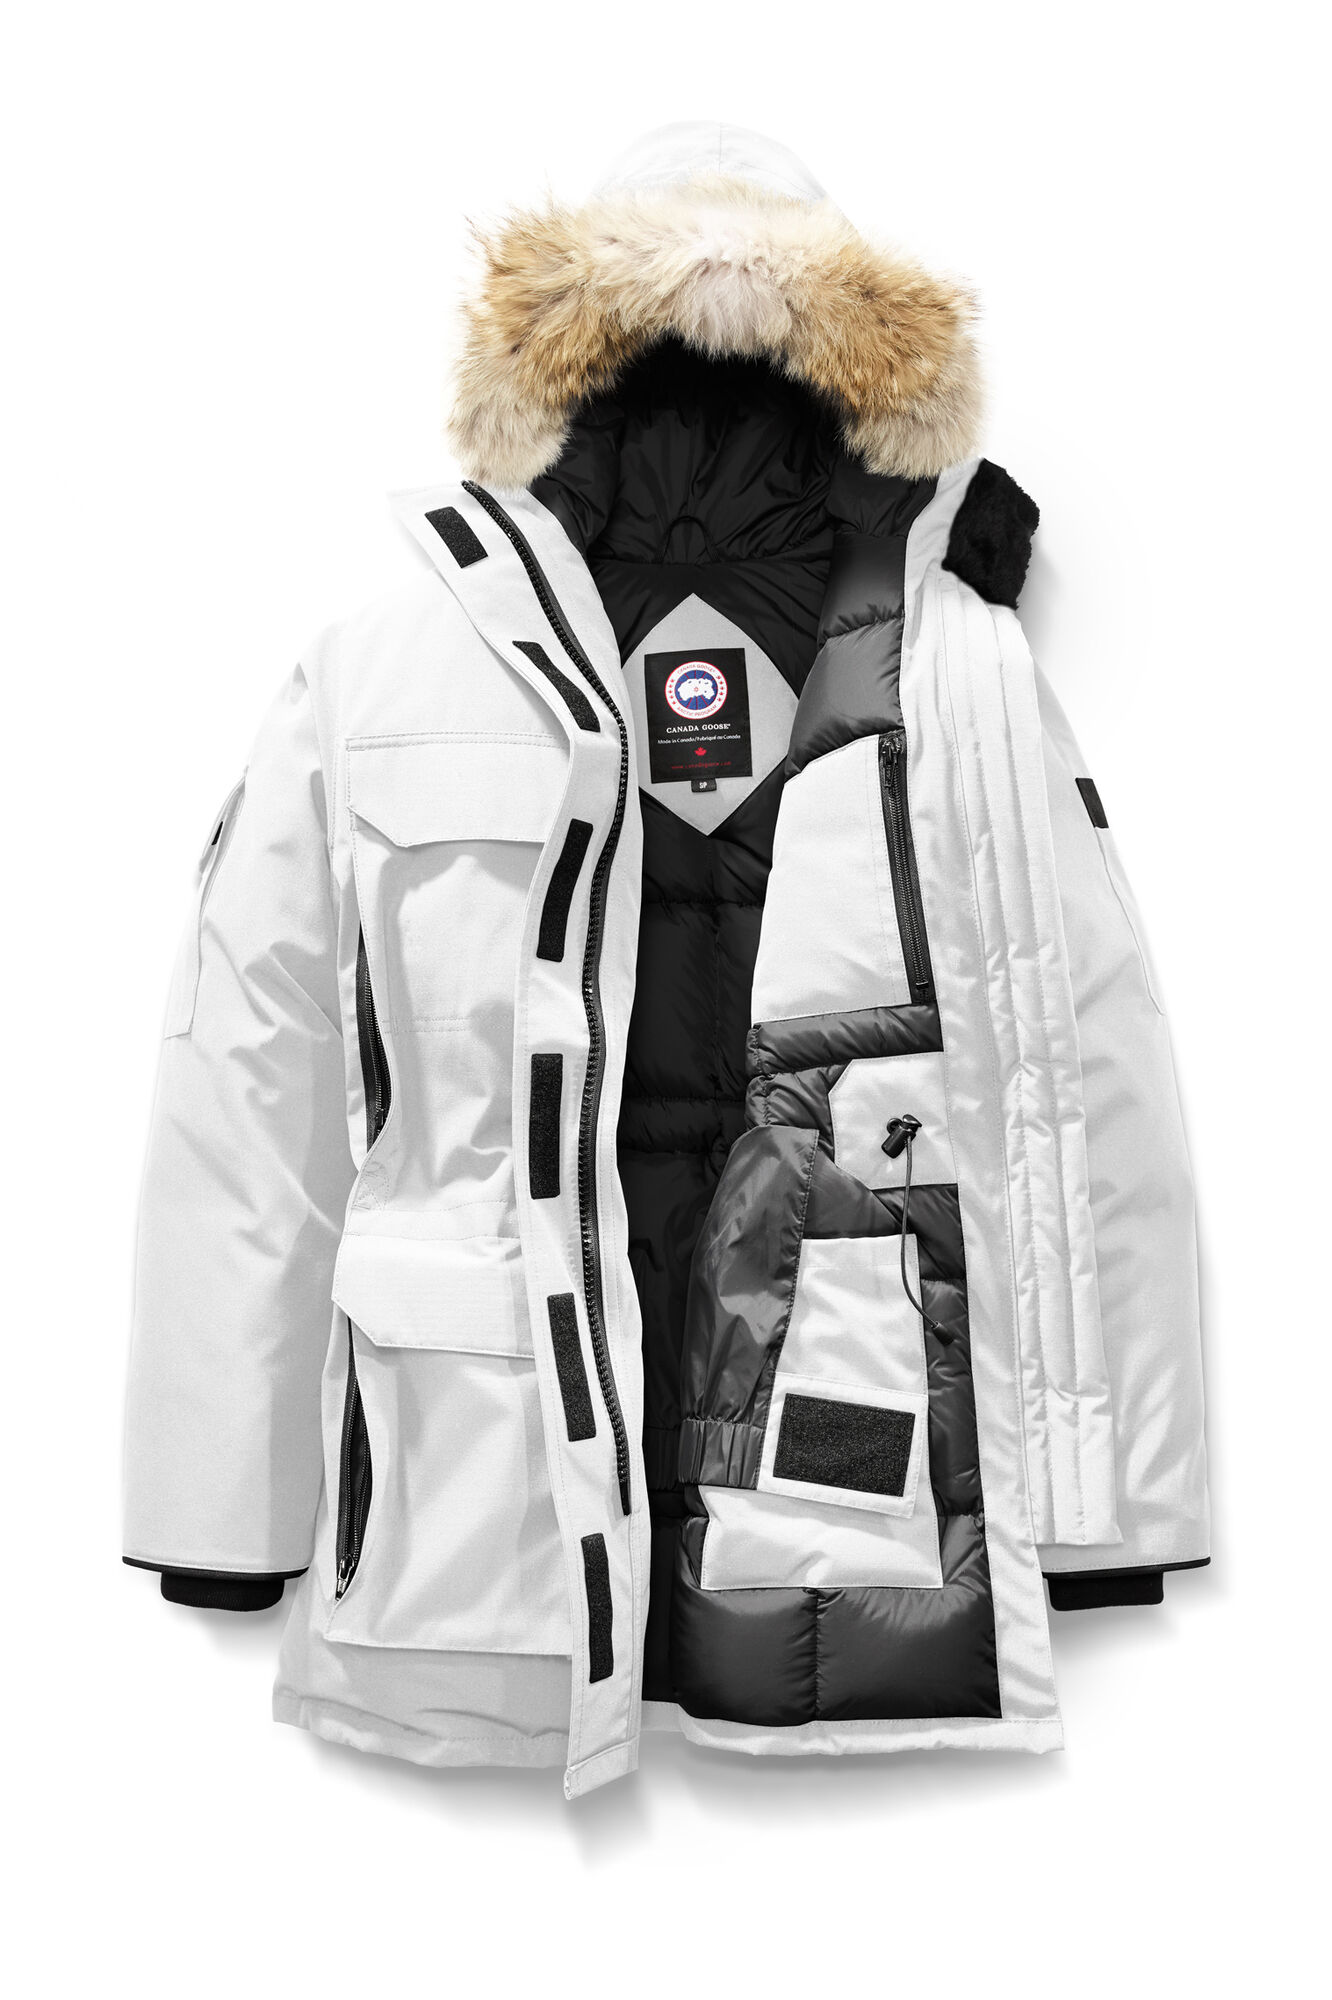 Canada Goose chilliwack parka sale 2016 - Women's Arctic Program Expedition Parka | Canada Goose?